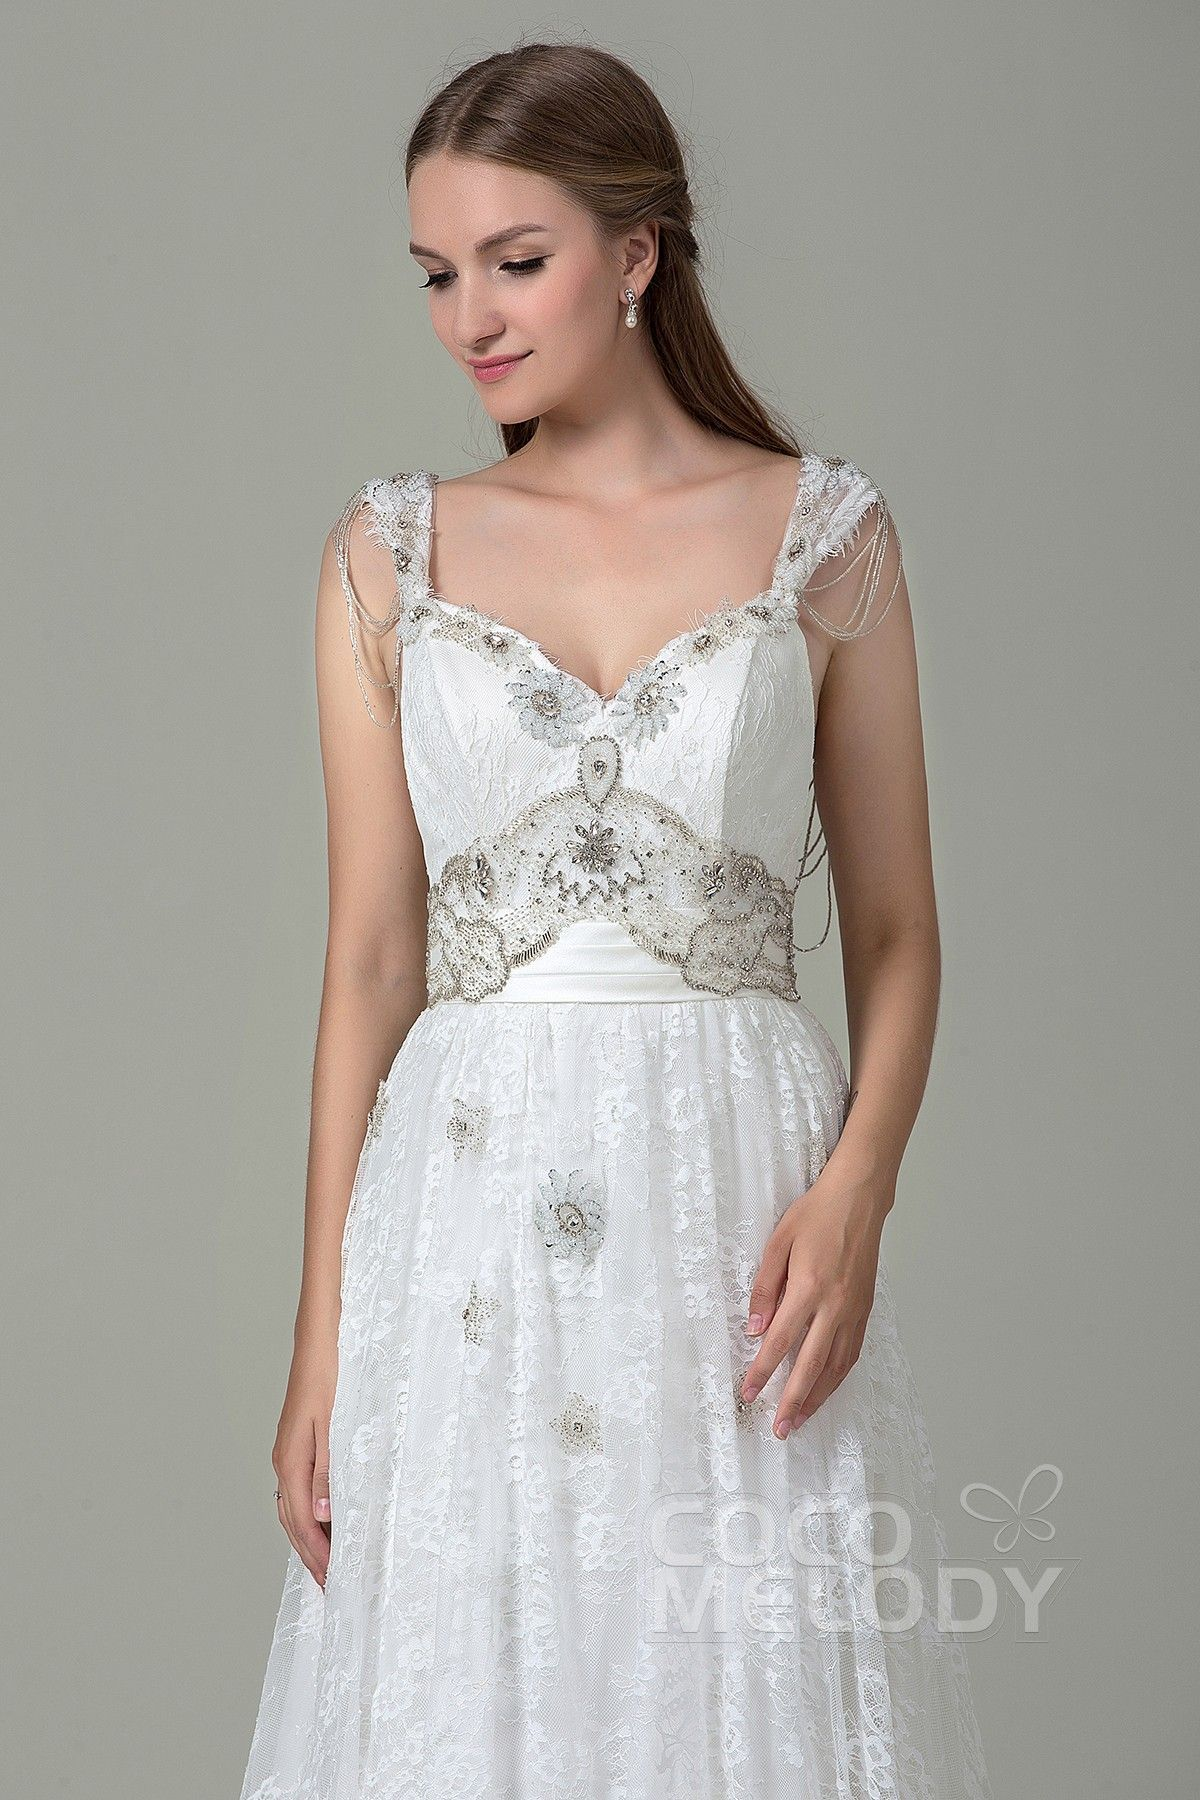 9c595341f3 Classic Sheath-Column Straps Natural Court Train Lace and Satin Ivory  Sleeveless Open Back Wedding Dress with Appliques Beading and Bowknot  LWZT140B8 ...